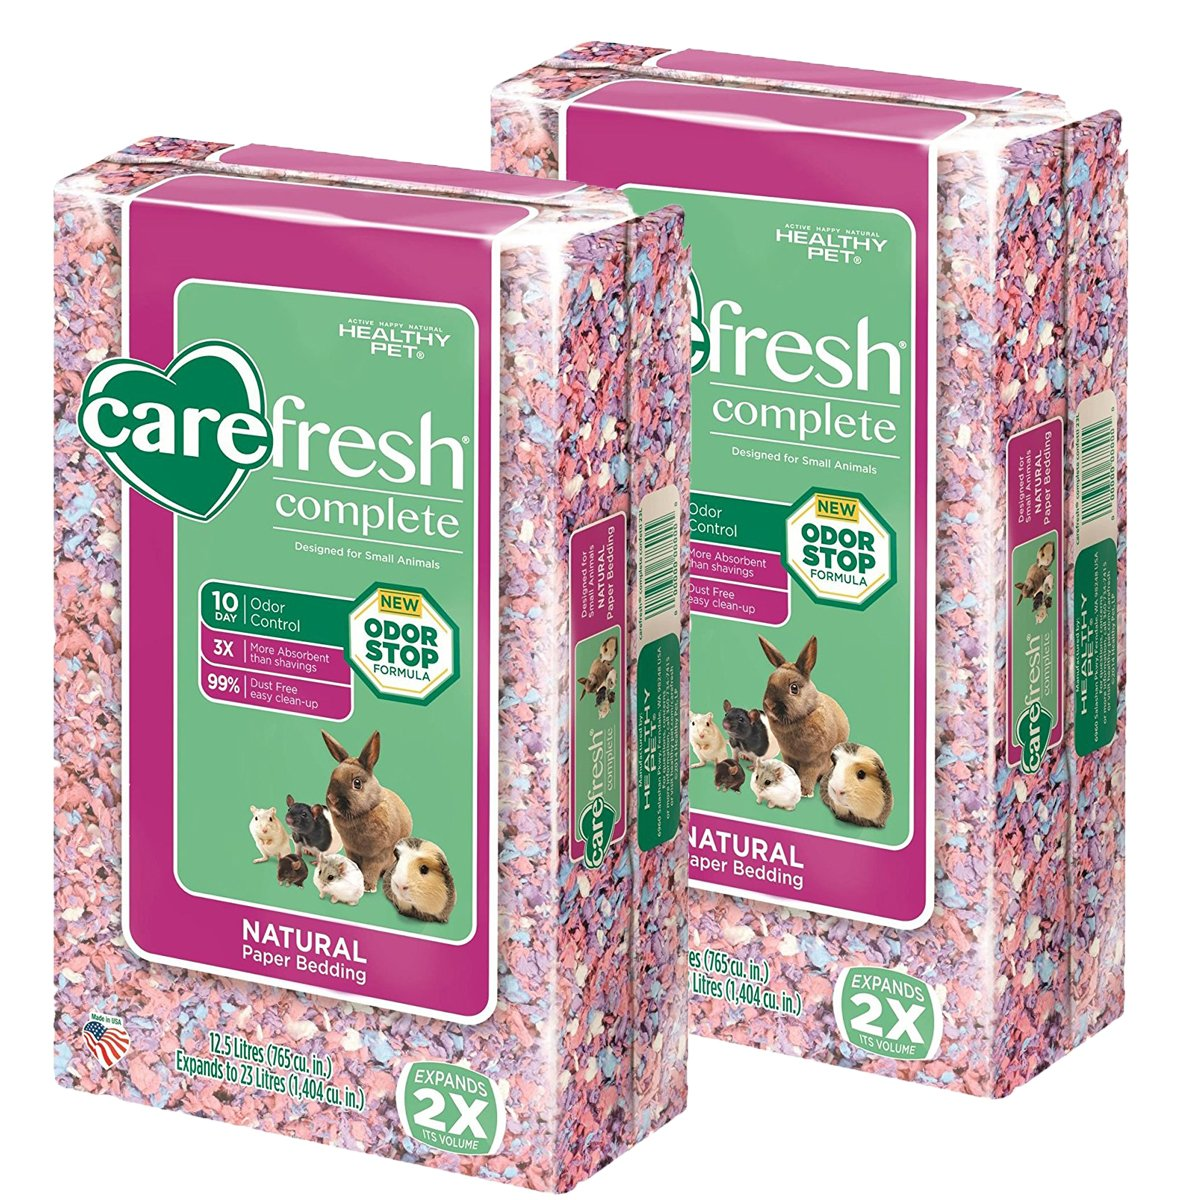 carefresh Complete Confetti Pet Bedding, 23 L (2-Pack) by Carefresh